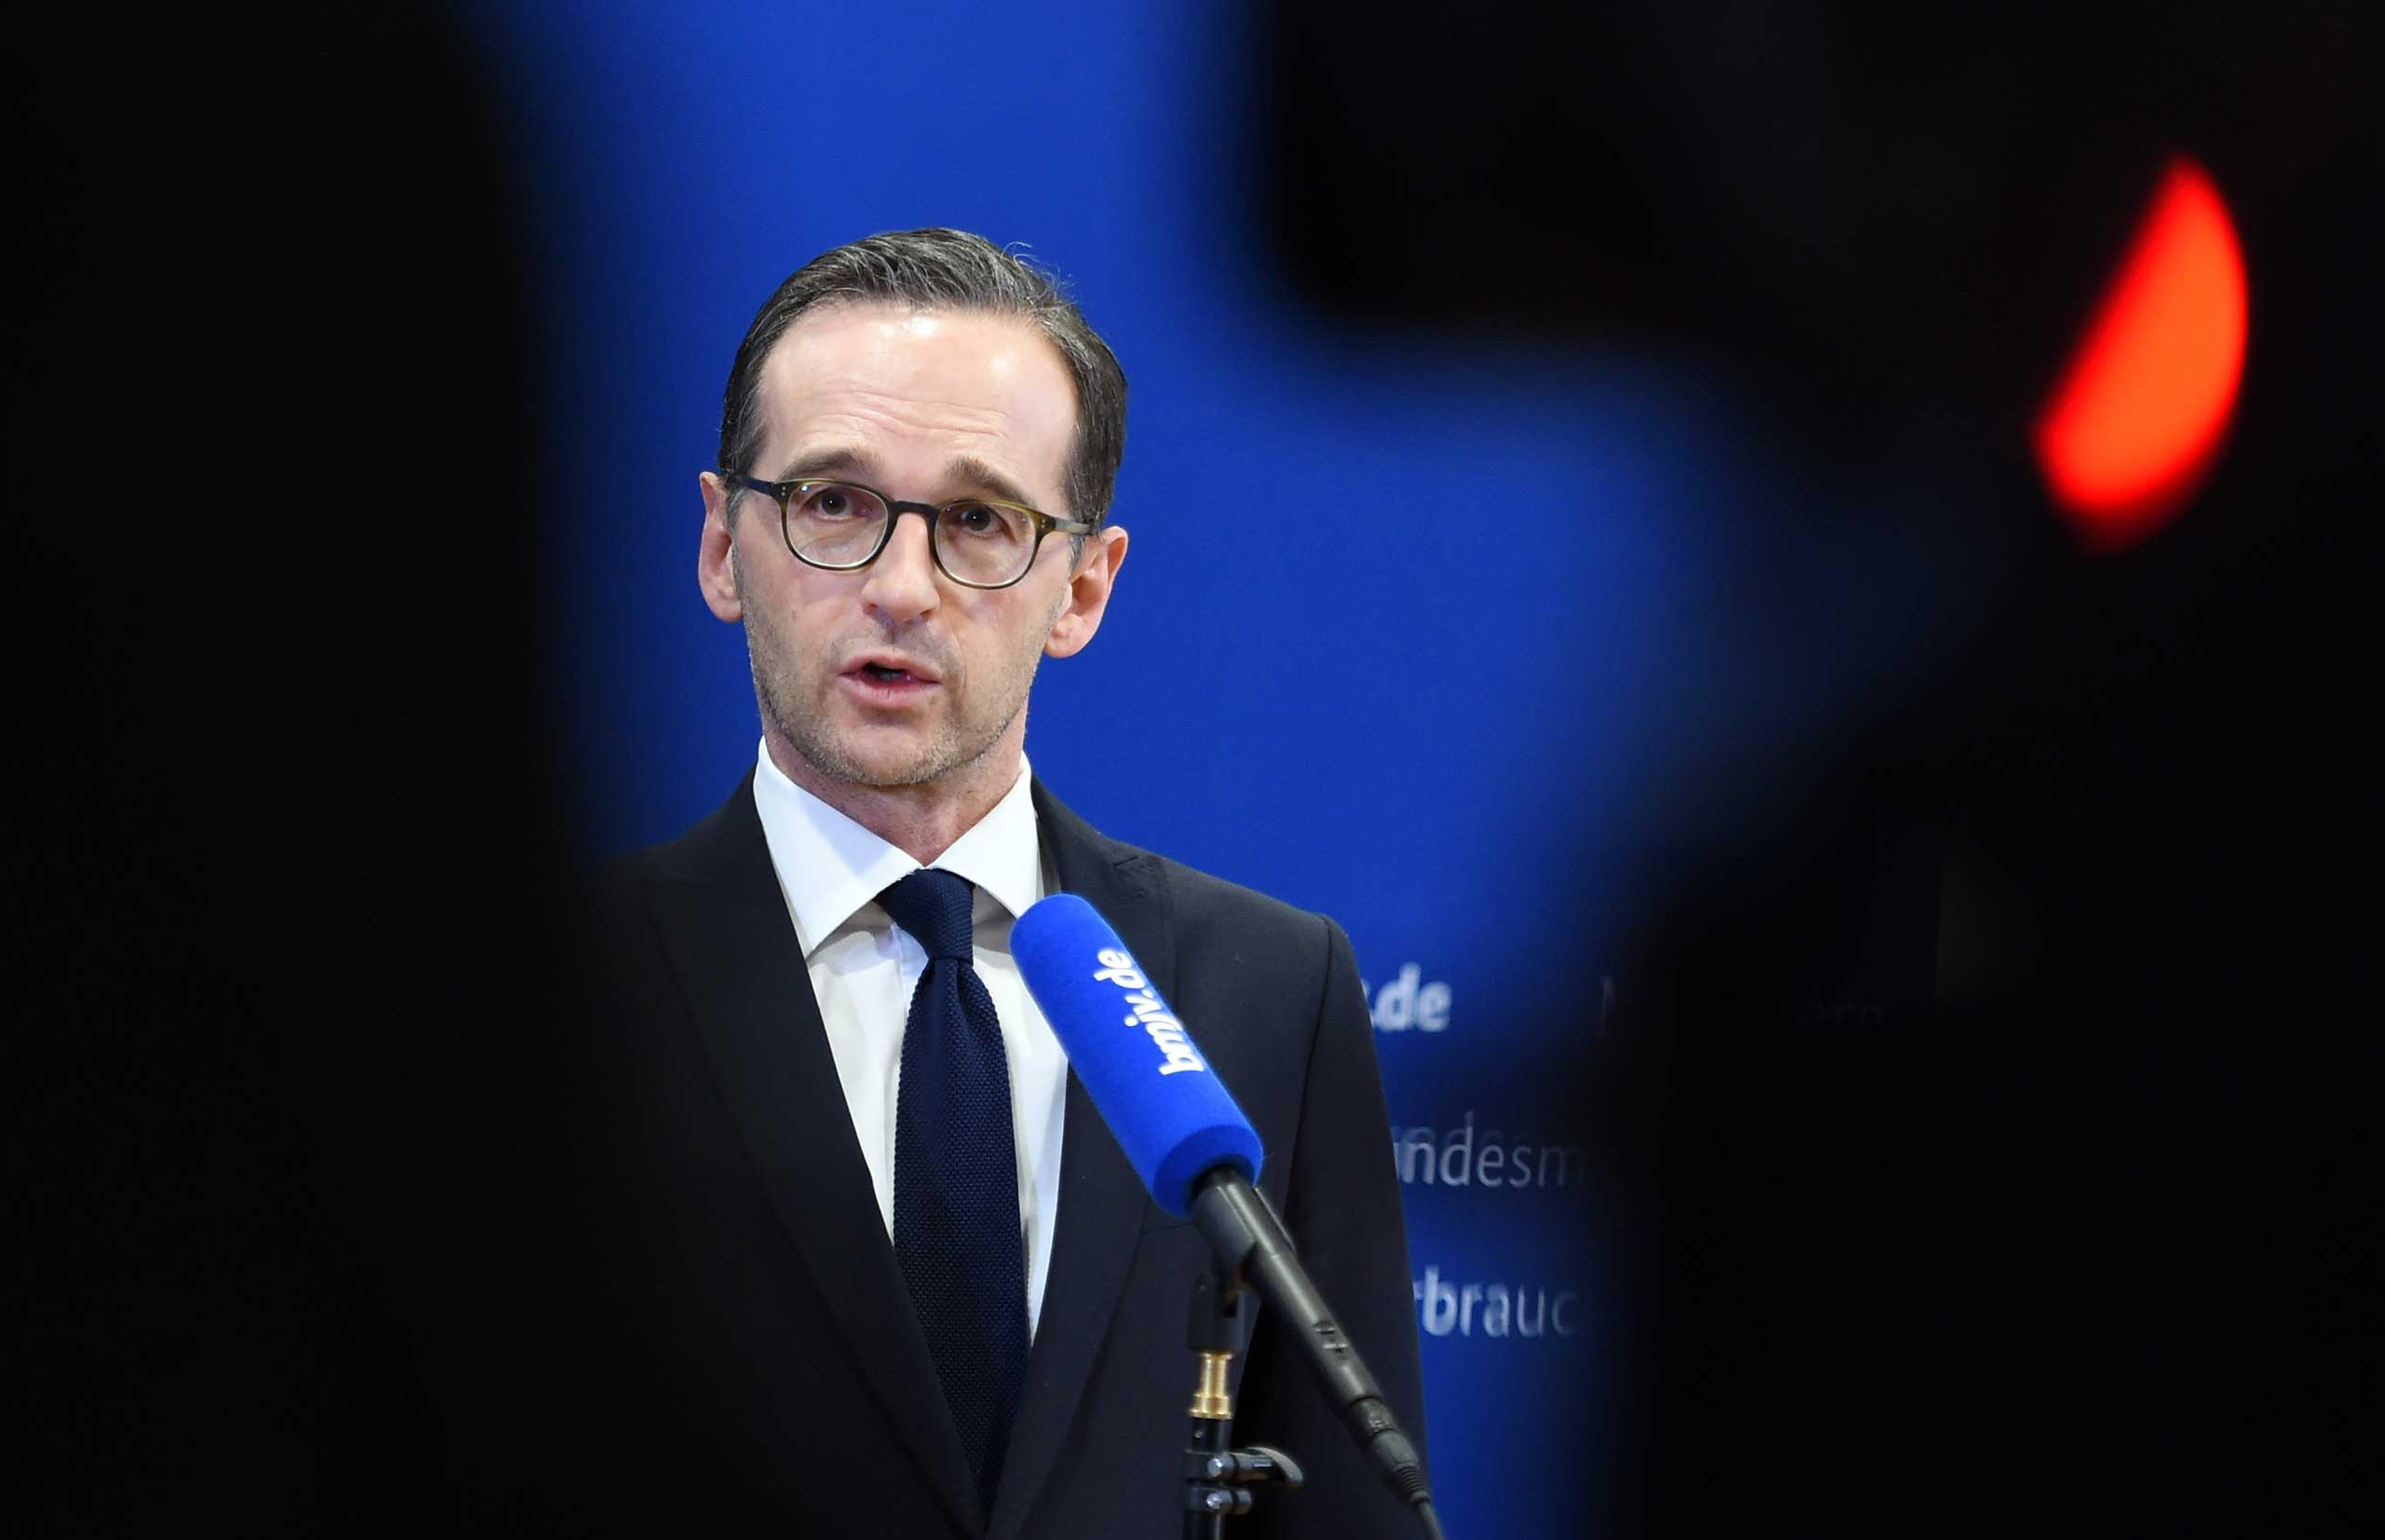 German federal justice minister Heiko Maas delivers remarks in Berlin on the New Year's Eve assaults in Cologne, Germany, Jan. 5, 2016.